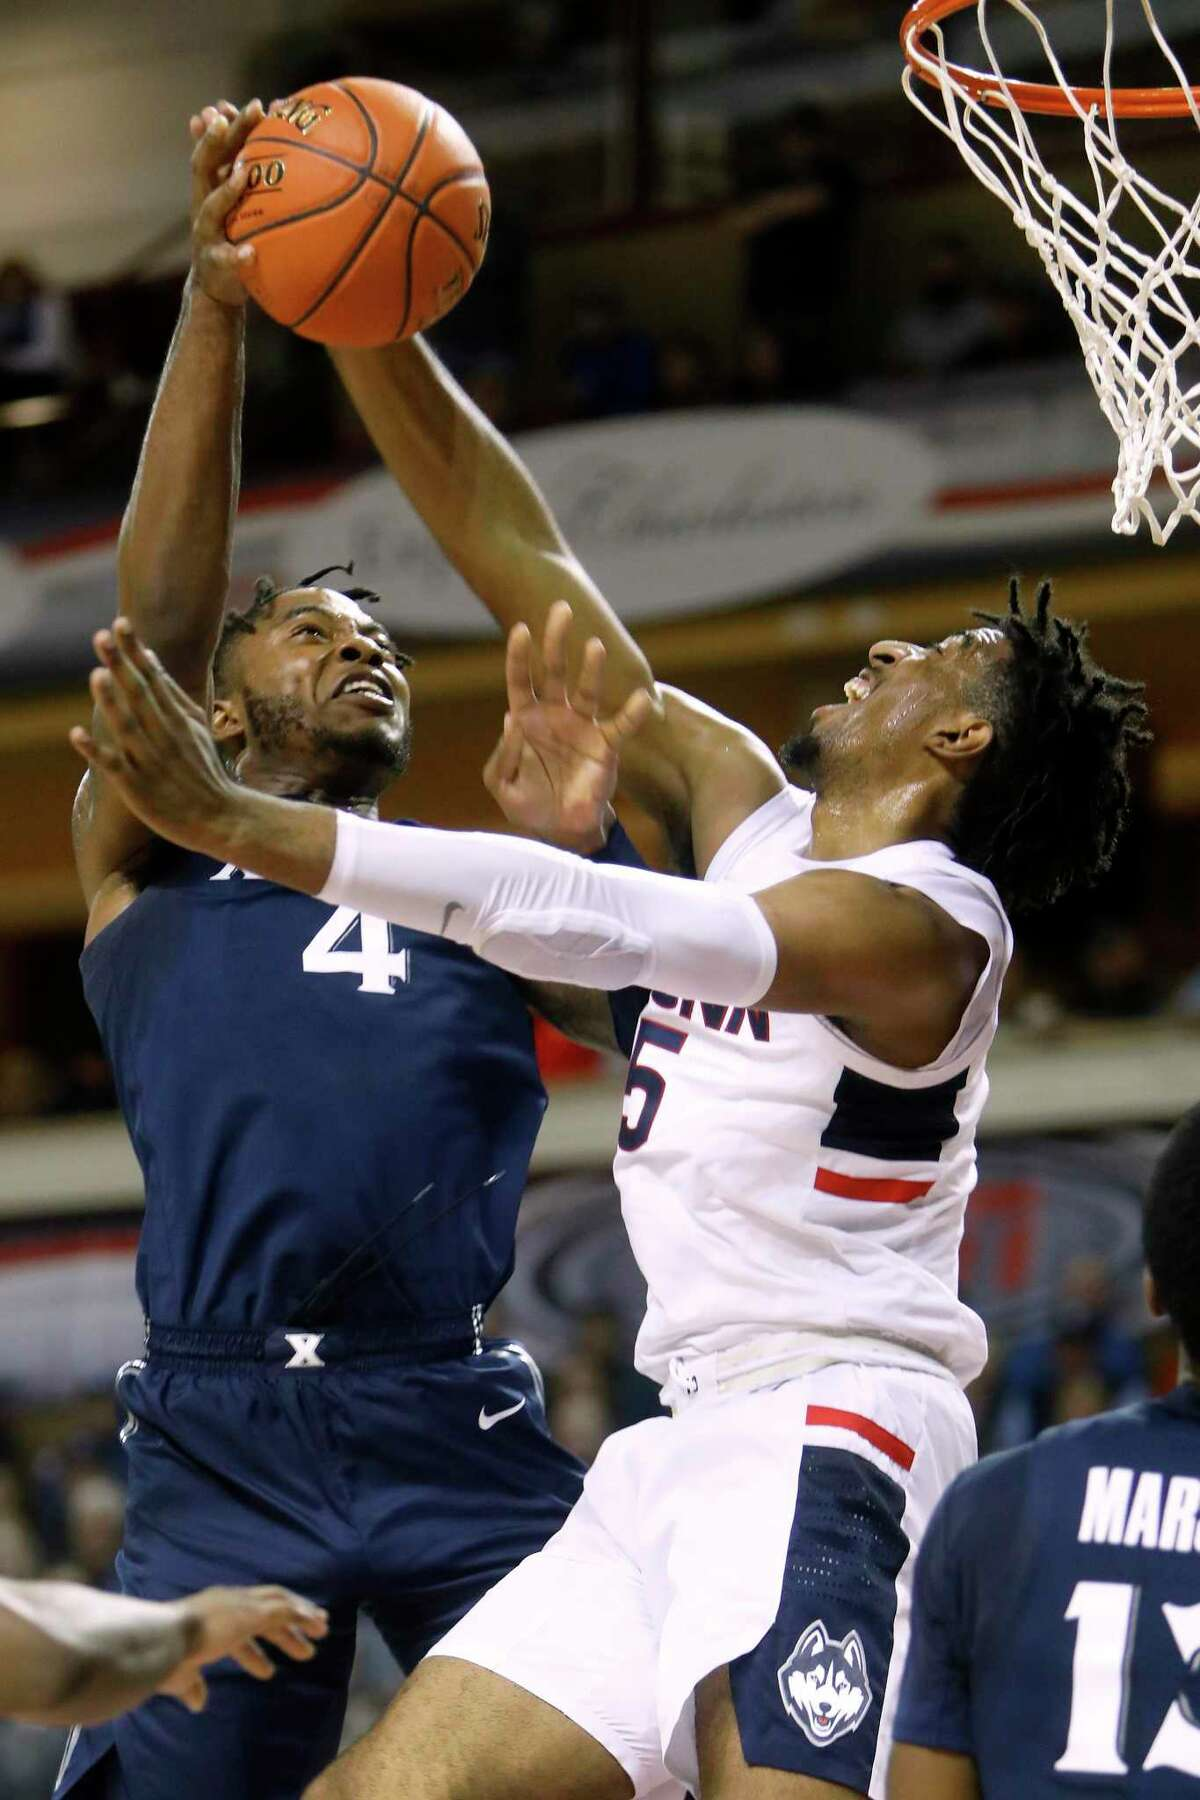 Xavier's Tyrique Jones, at left, goes up for a shot against the defense of Connecticut's Isaiah Whaley in the first half of an NCAA college basketball game during the Charleston Classic Friday, Nov. 22, 2019, in Charleston, SC. (AP Photo/Mic Smith)